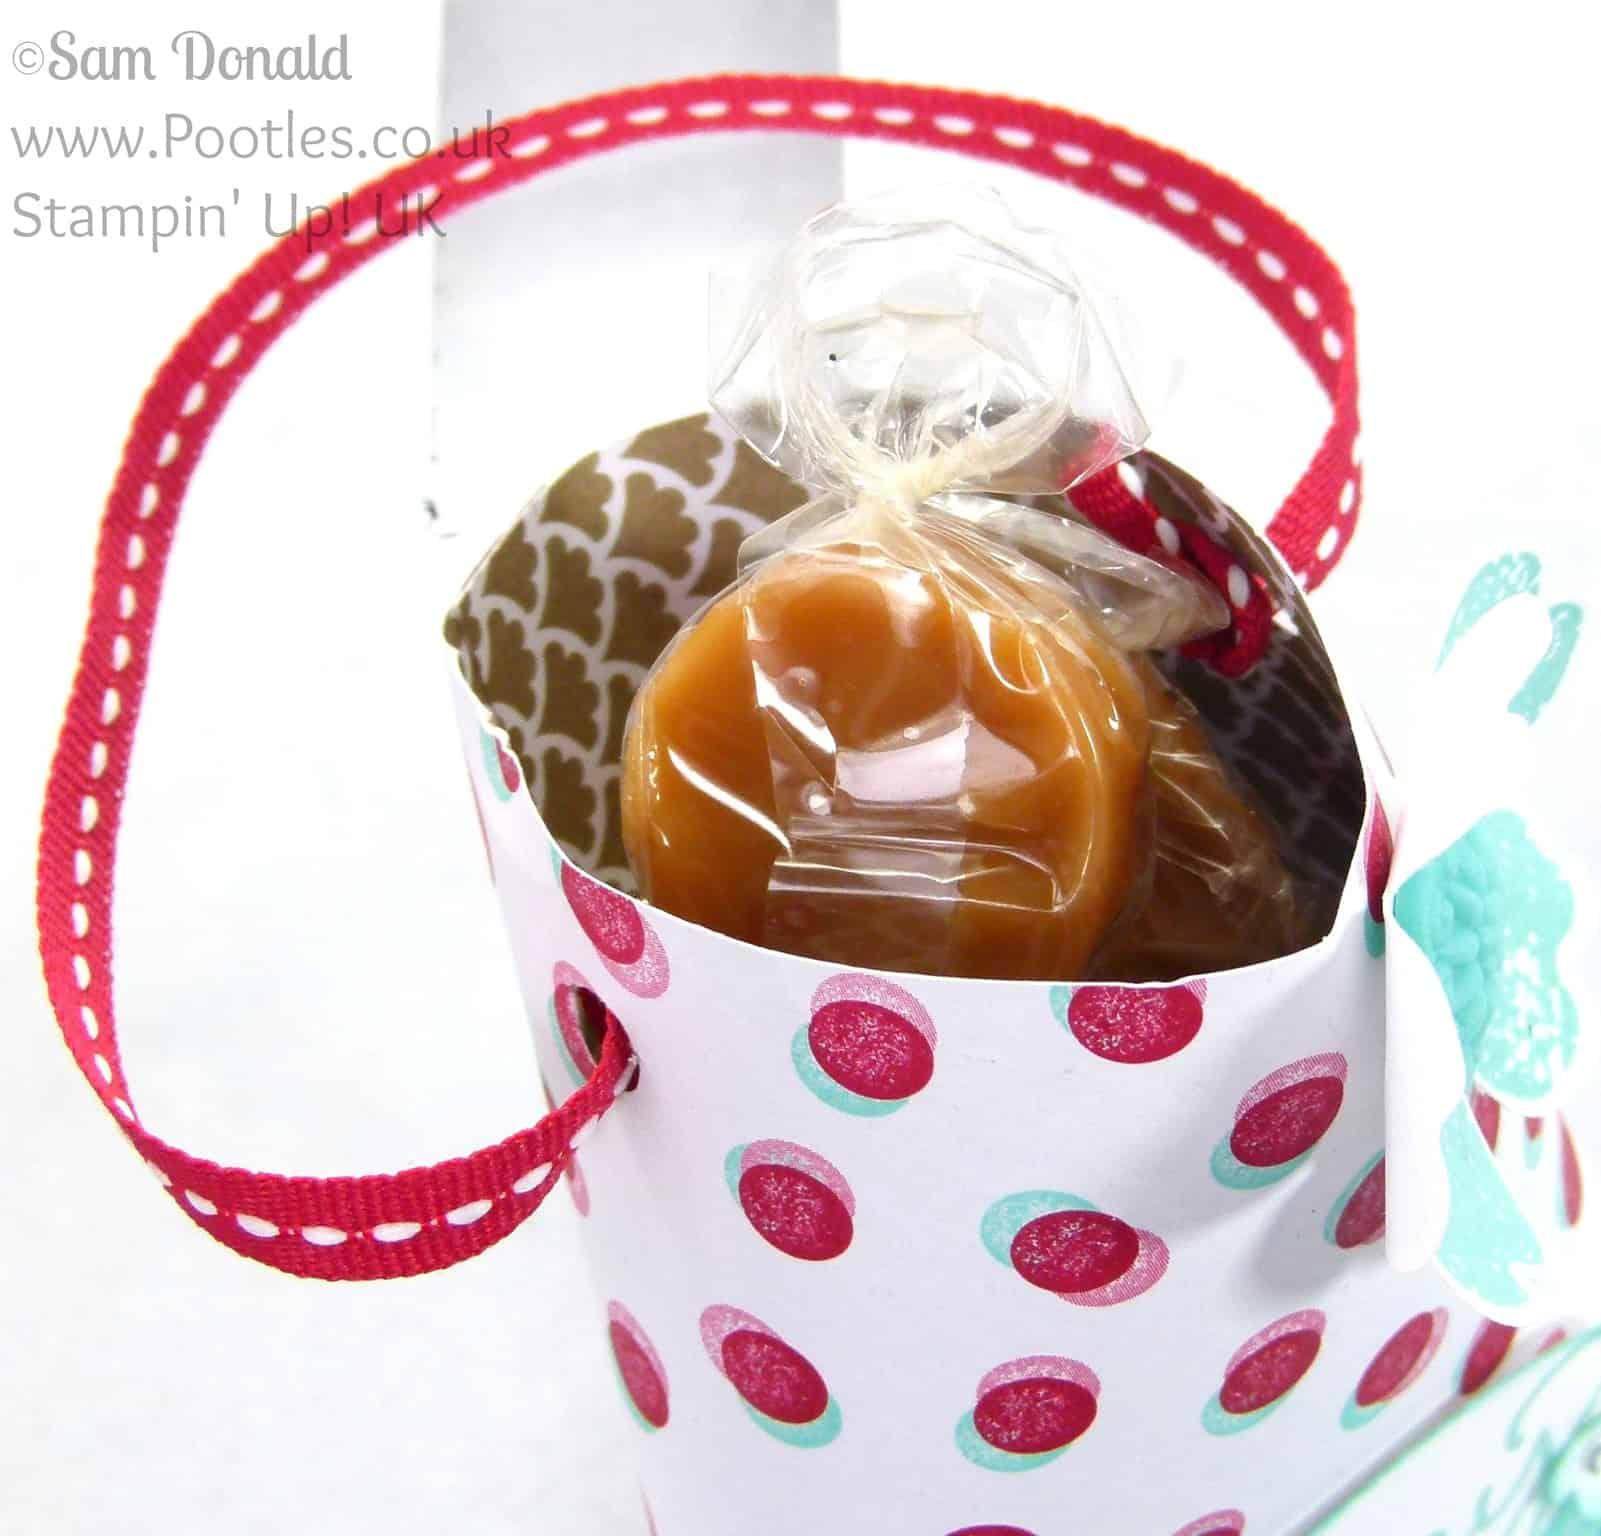 POOTLES Stampin' Up! UK Hanging Treat Pouch Overhead